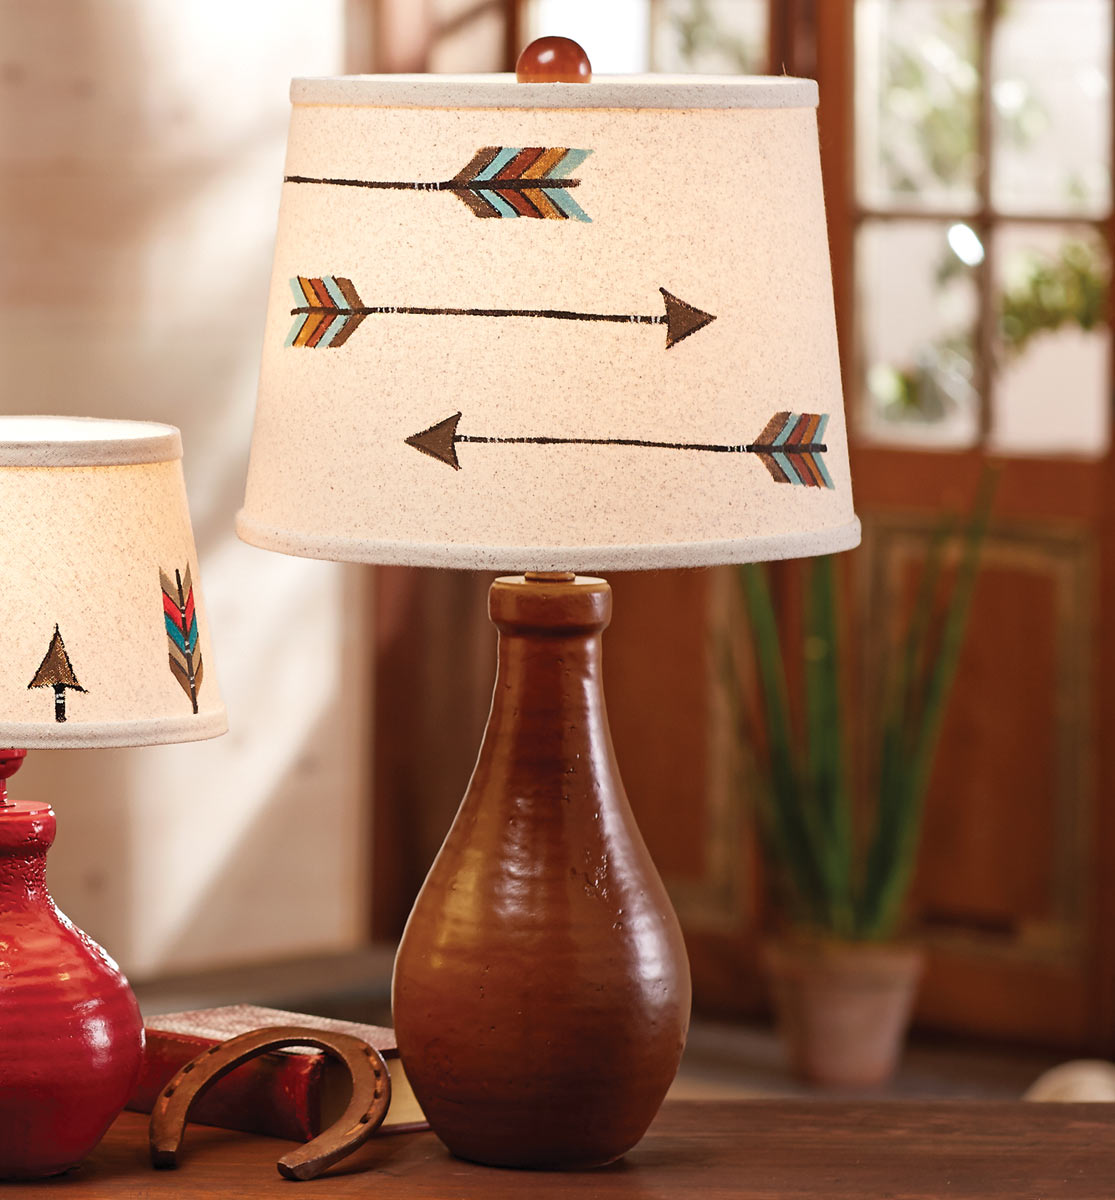 Lone Star Western Decor Spice jug with two arrows table lamp